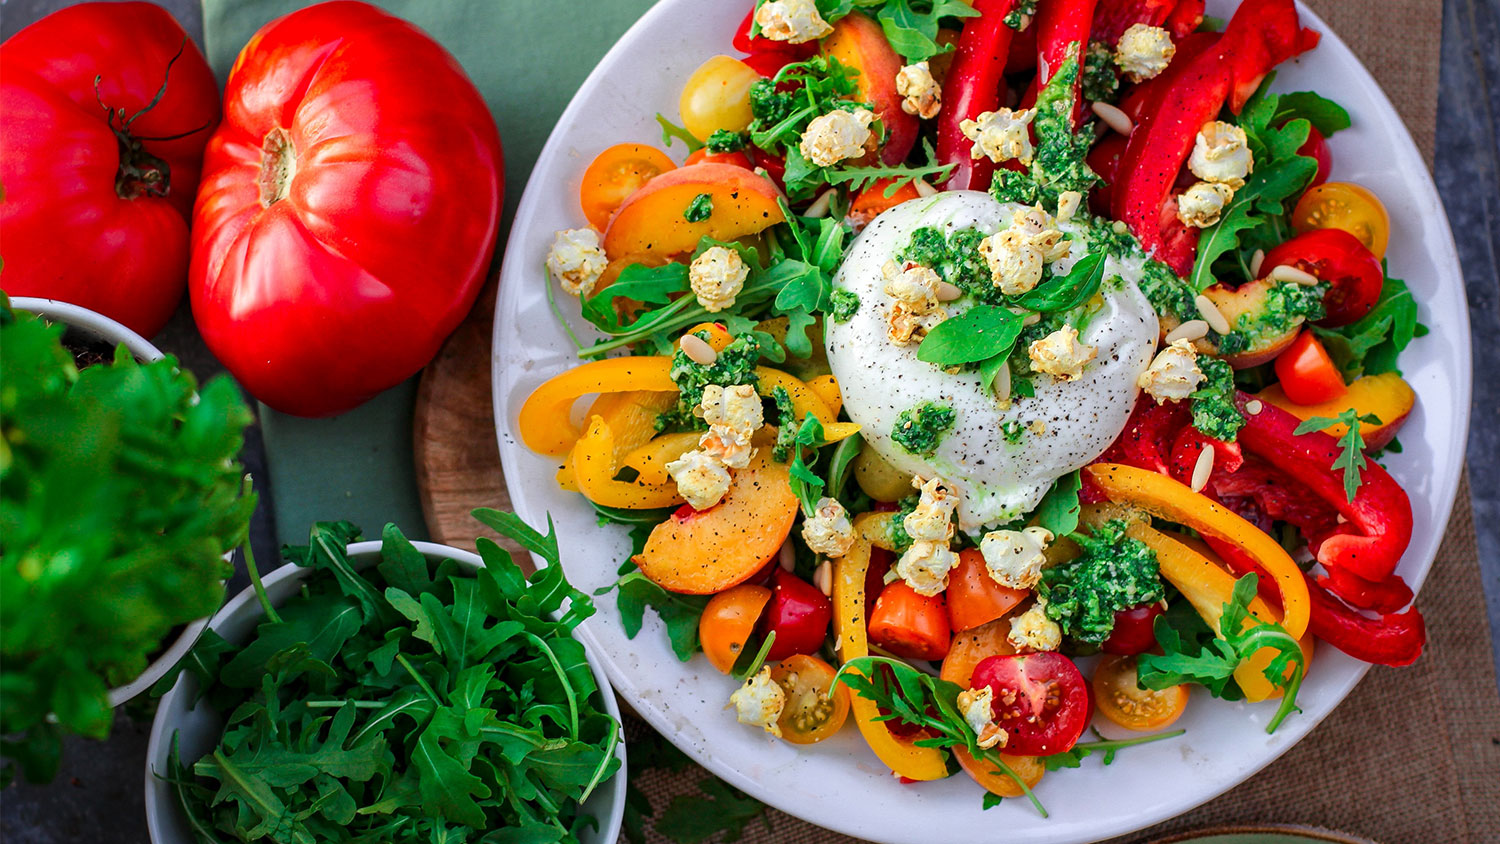 Picture of tomato and colorful salad